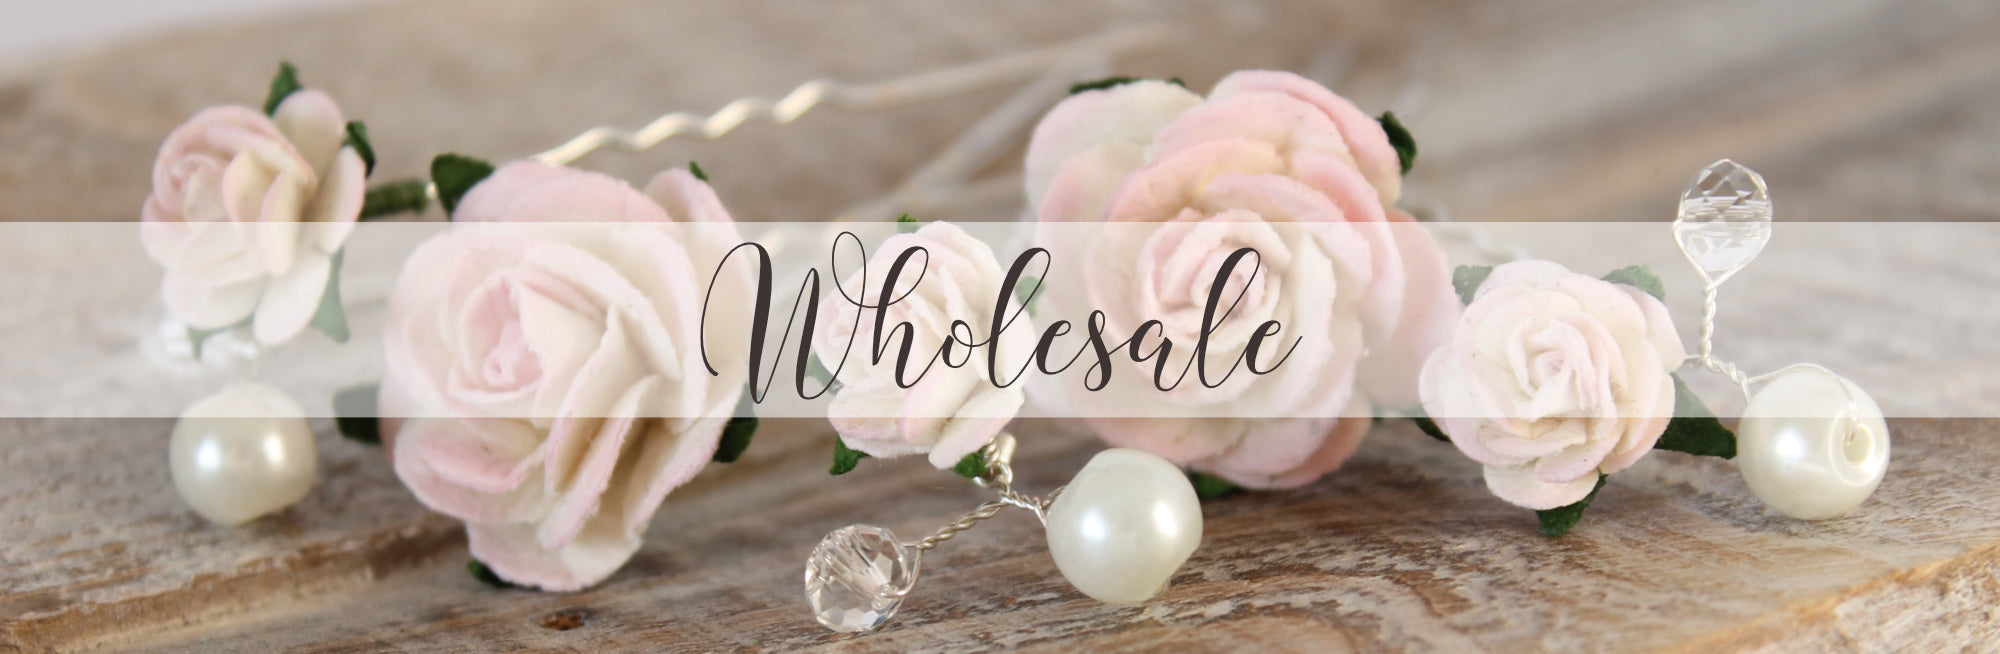 wholesale and events flash floozy